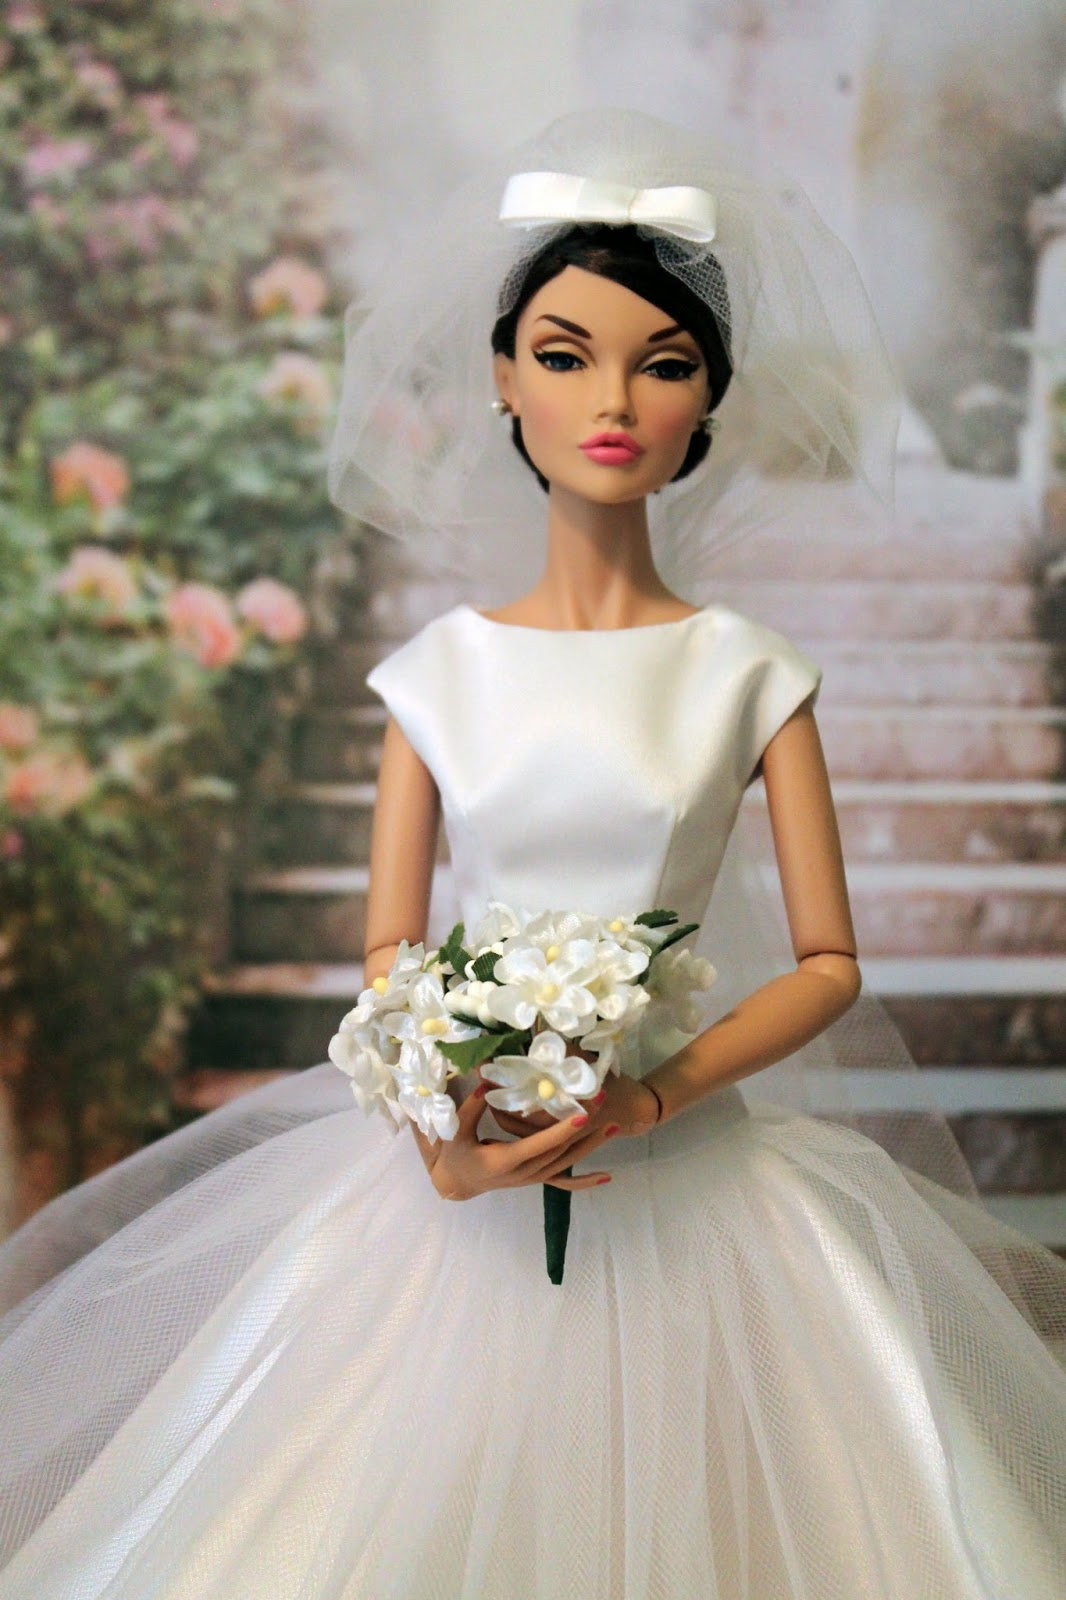 Diane on whidbey island funny face wedding dress for Funny face wedding dress